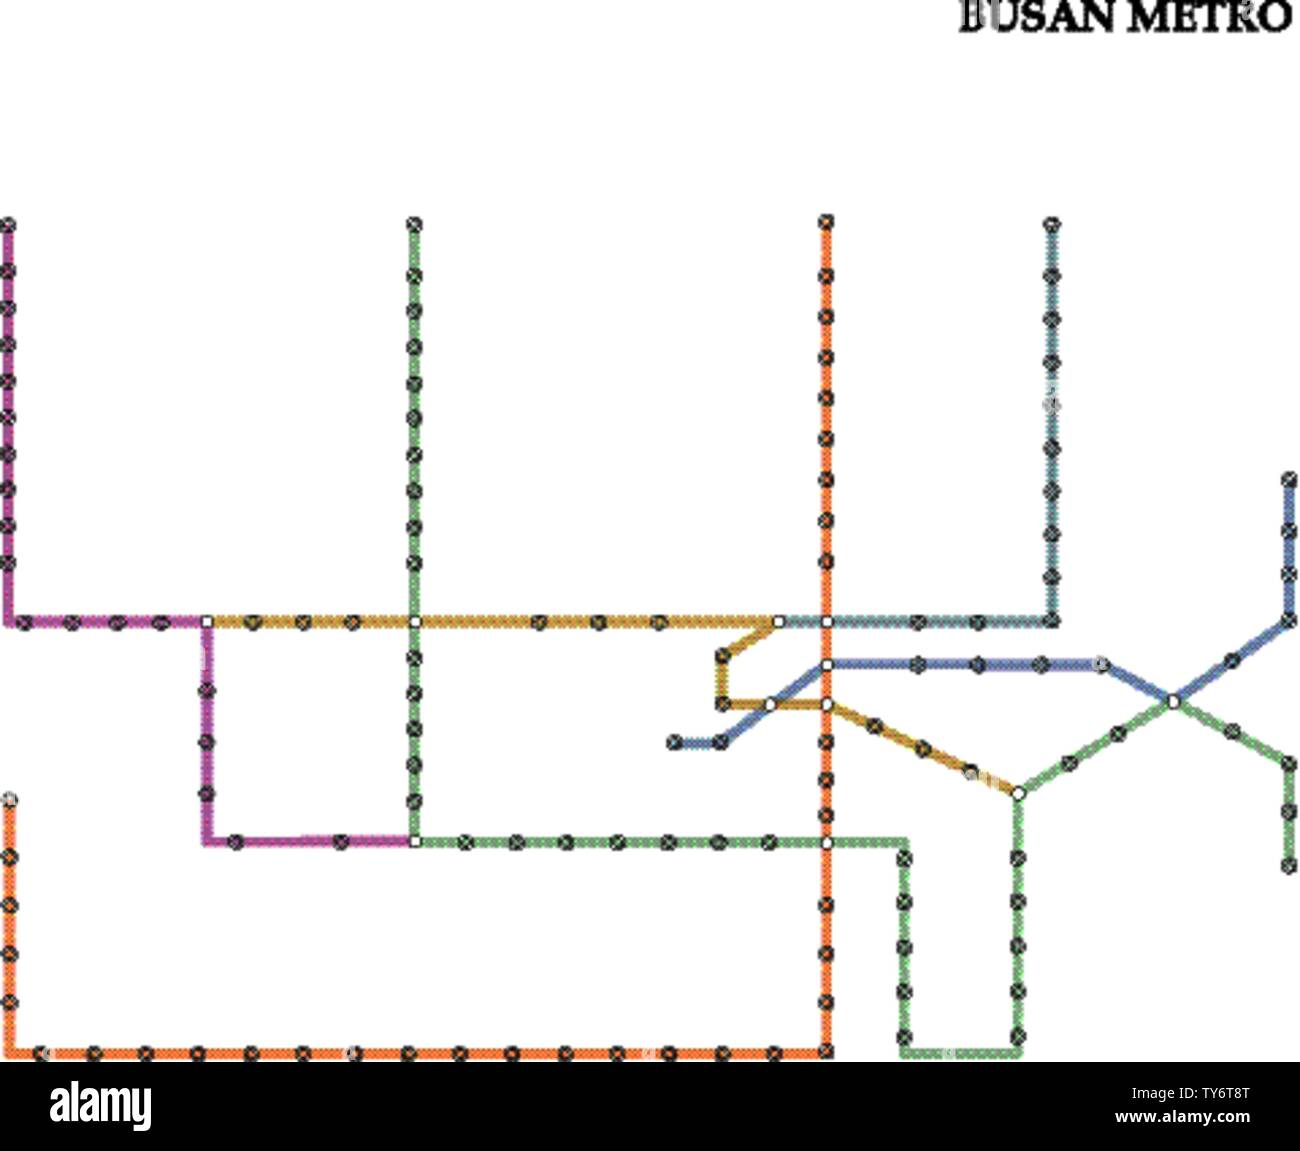 Map of the Busan metro, Subway, Template of city transportation scheme for underground road. Stock Vector